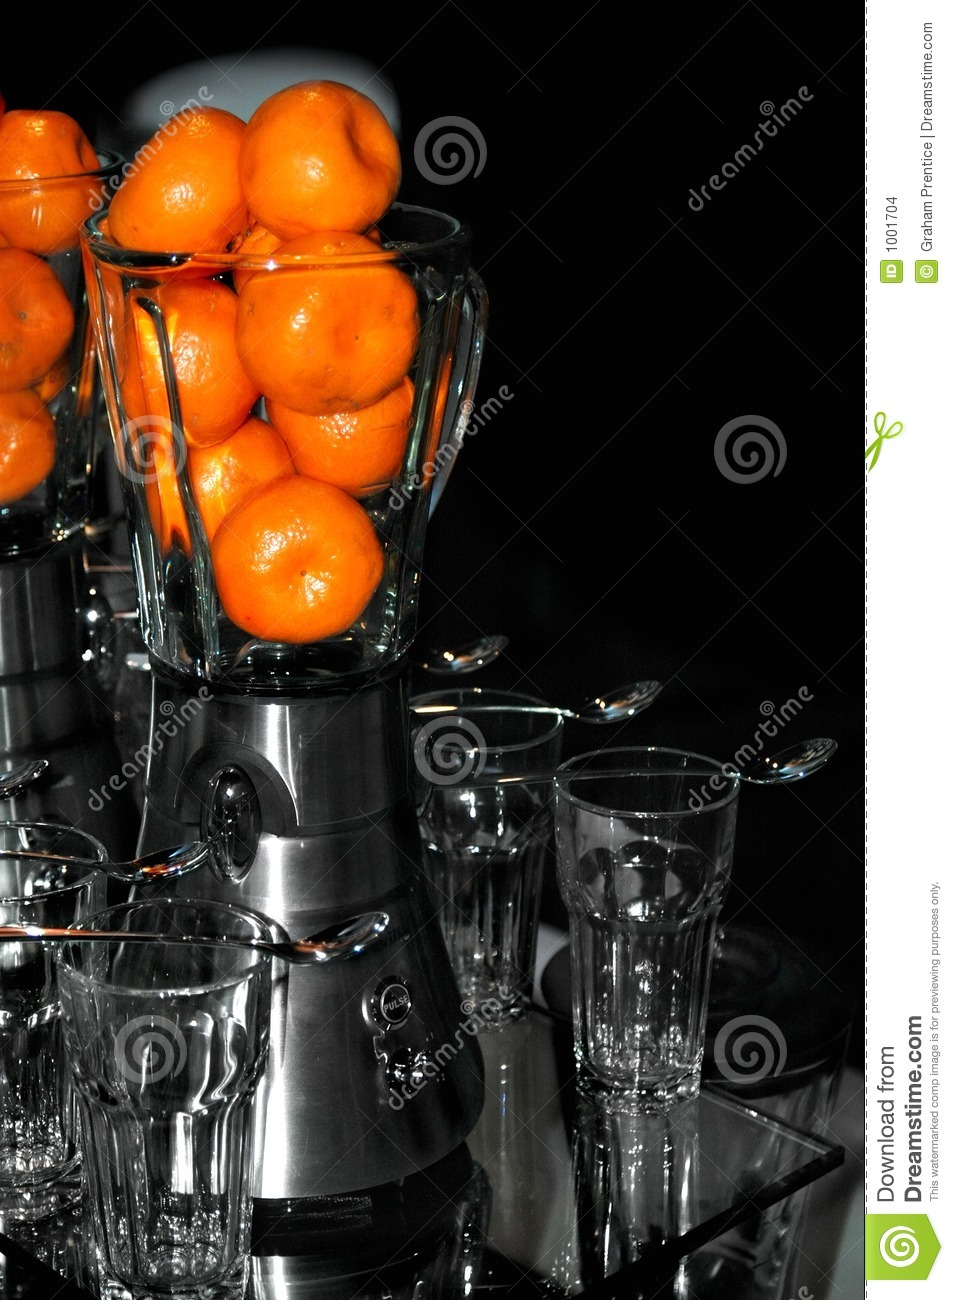 Kitchen Blender with Mandarins